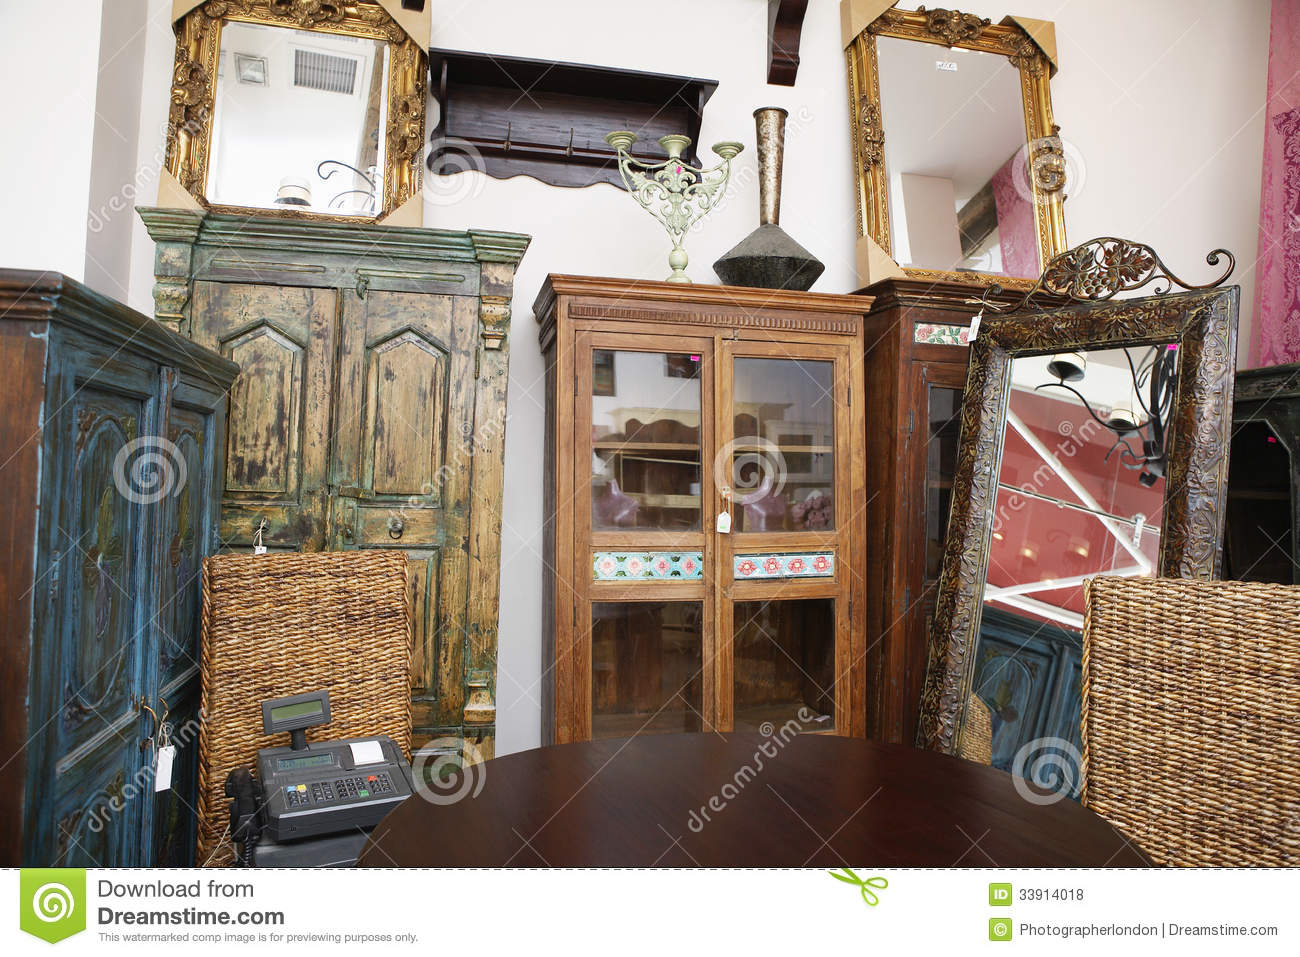 2Nd Hand Furniture Store used furniture store royalty free stock photos - image: 33914018